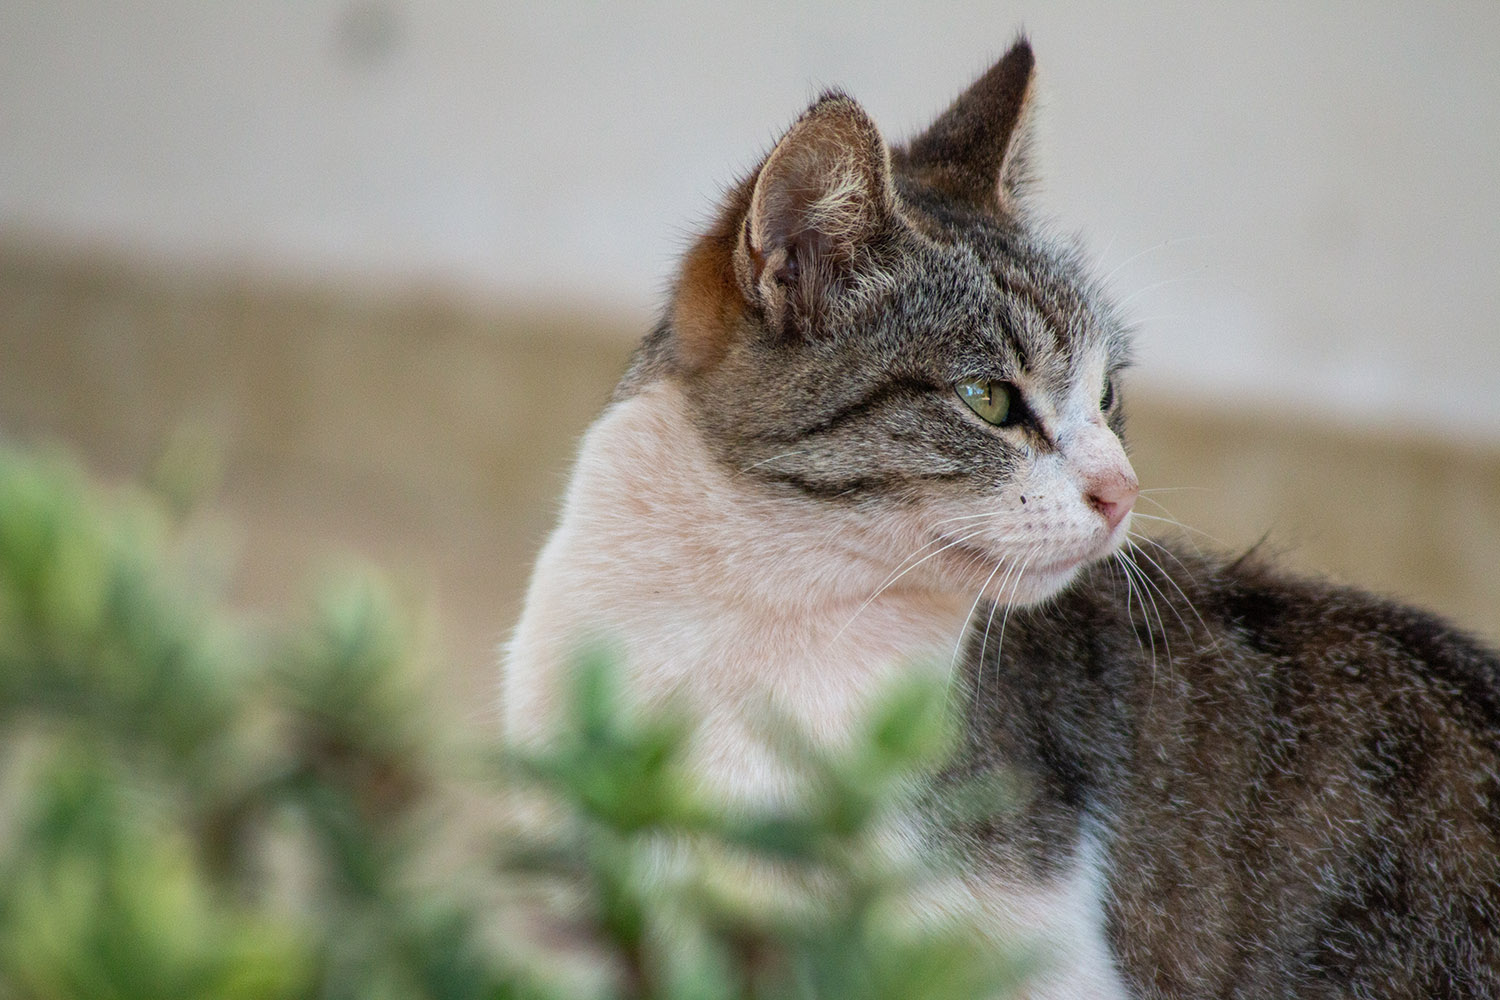 tight photo of cat looking away